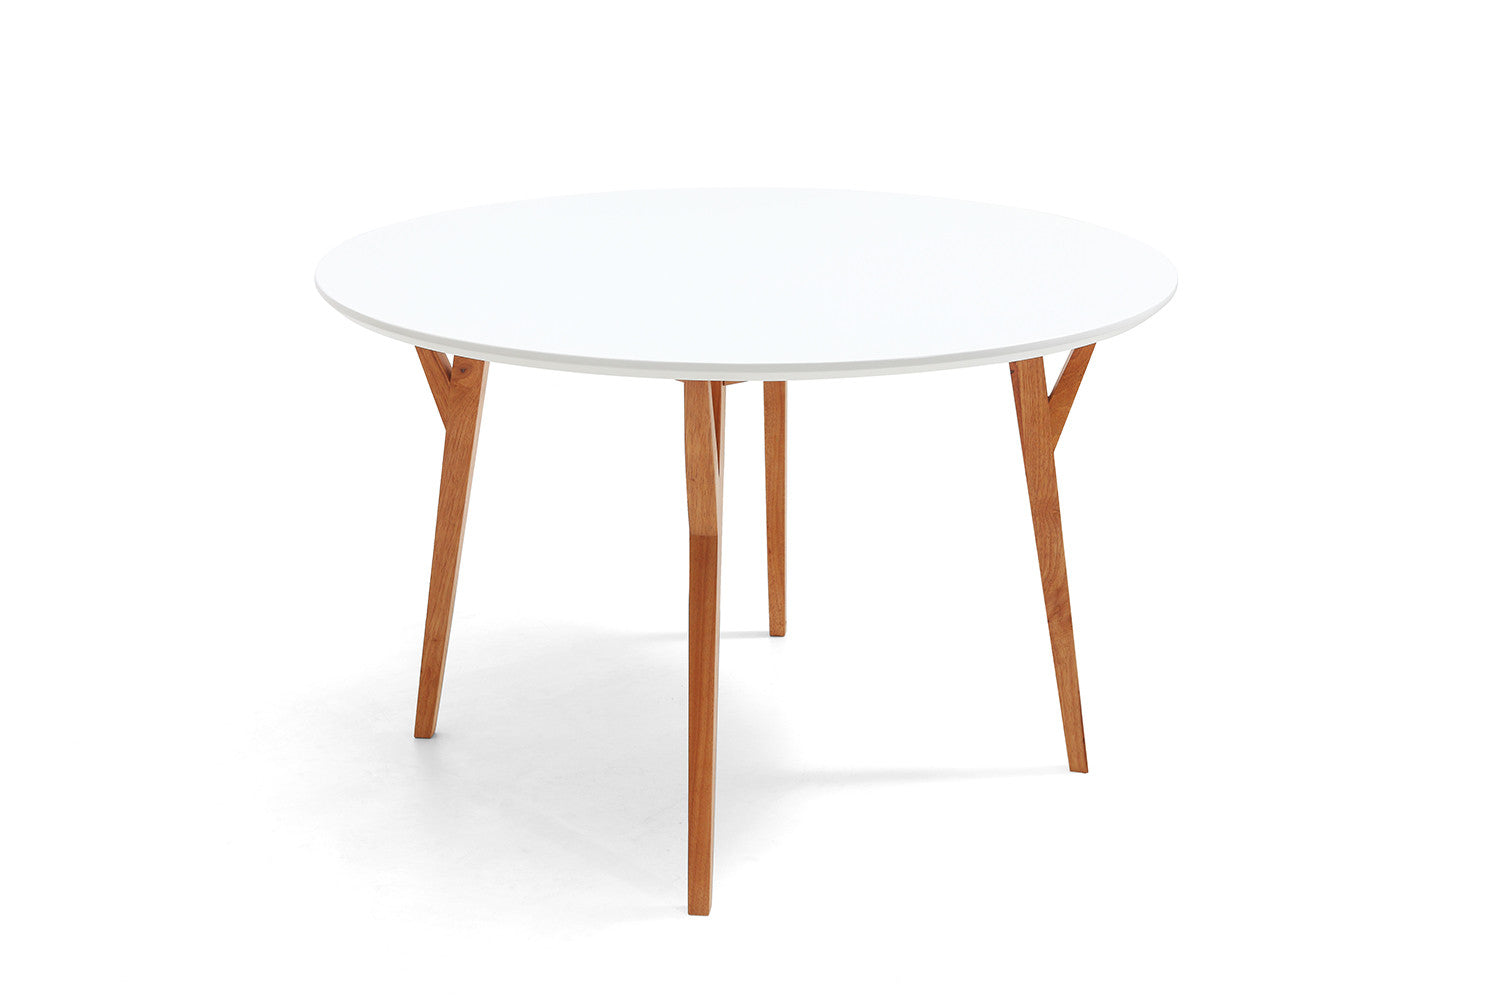 Table de salle manger ronde design scandinave moesa for Table salle a manger design avec rallonge